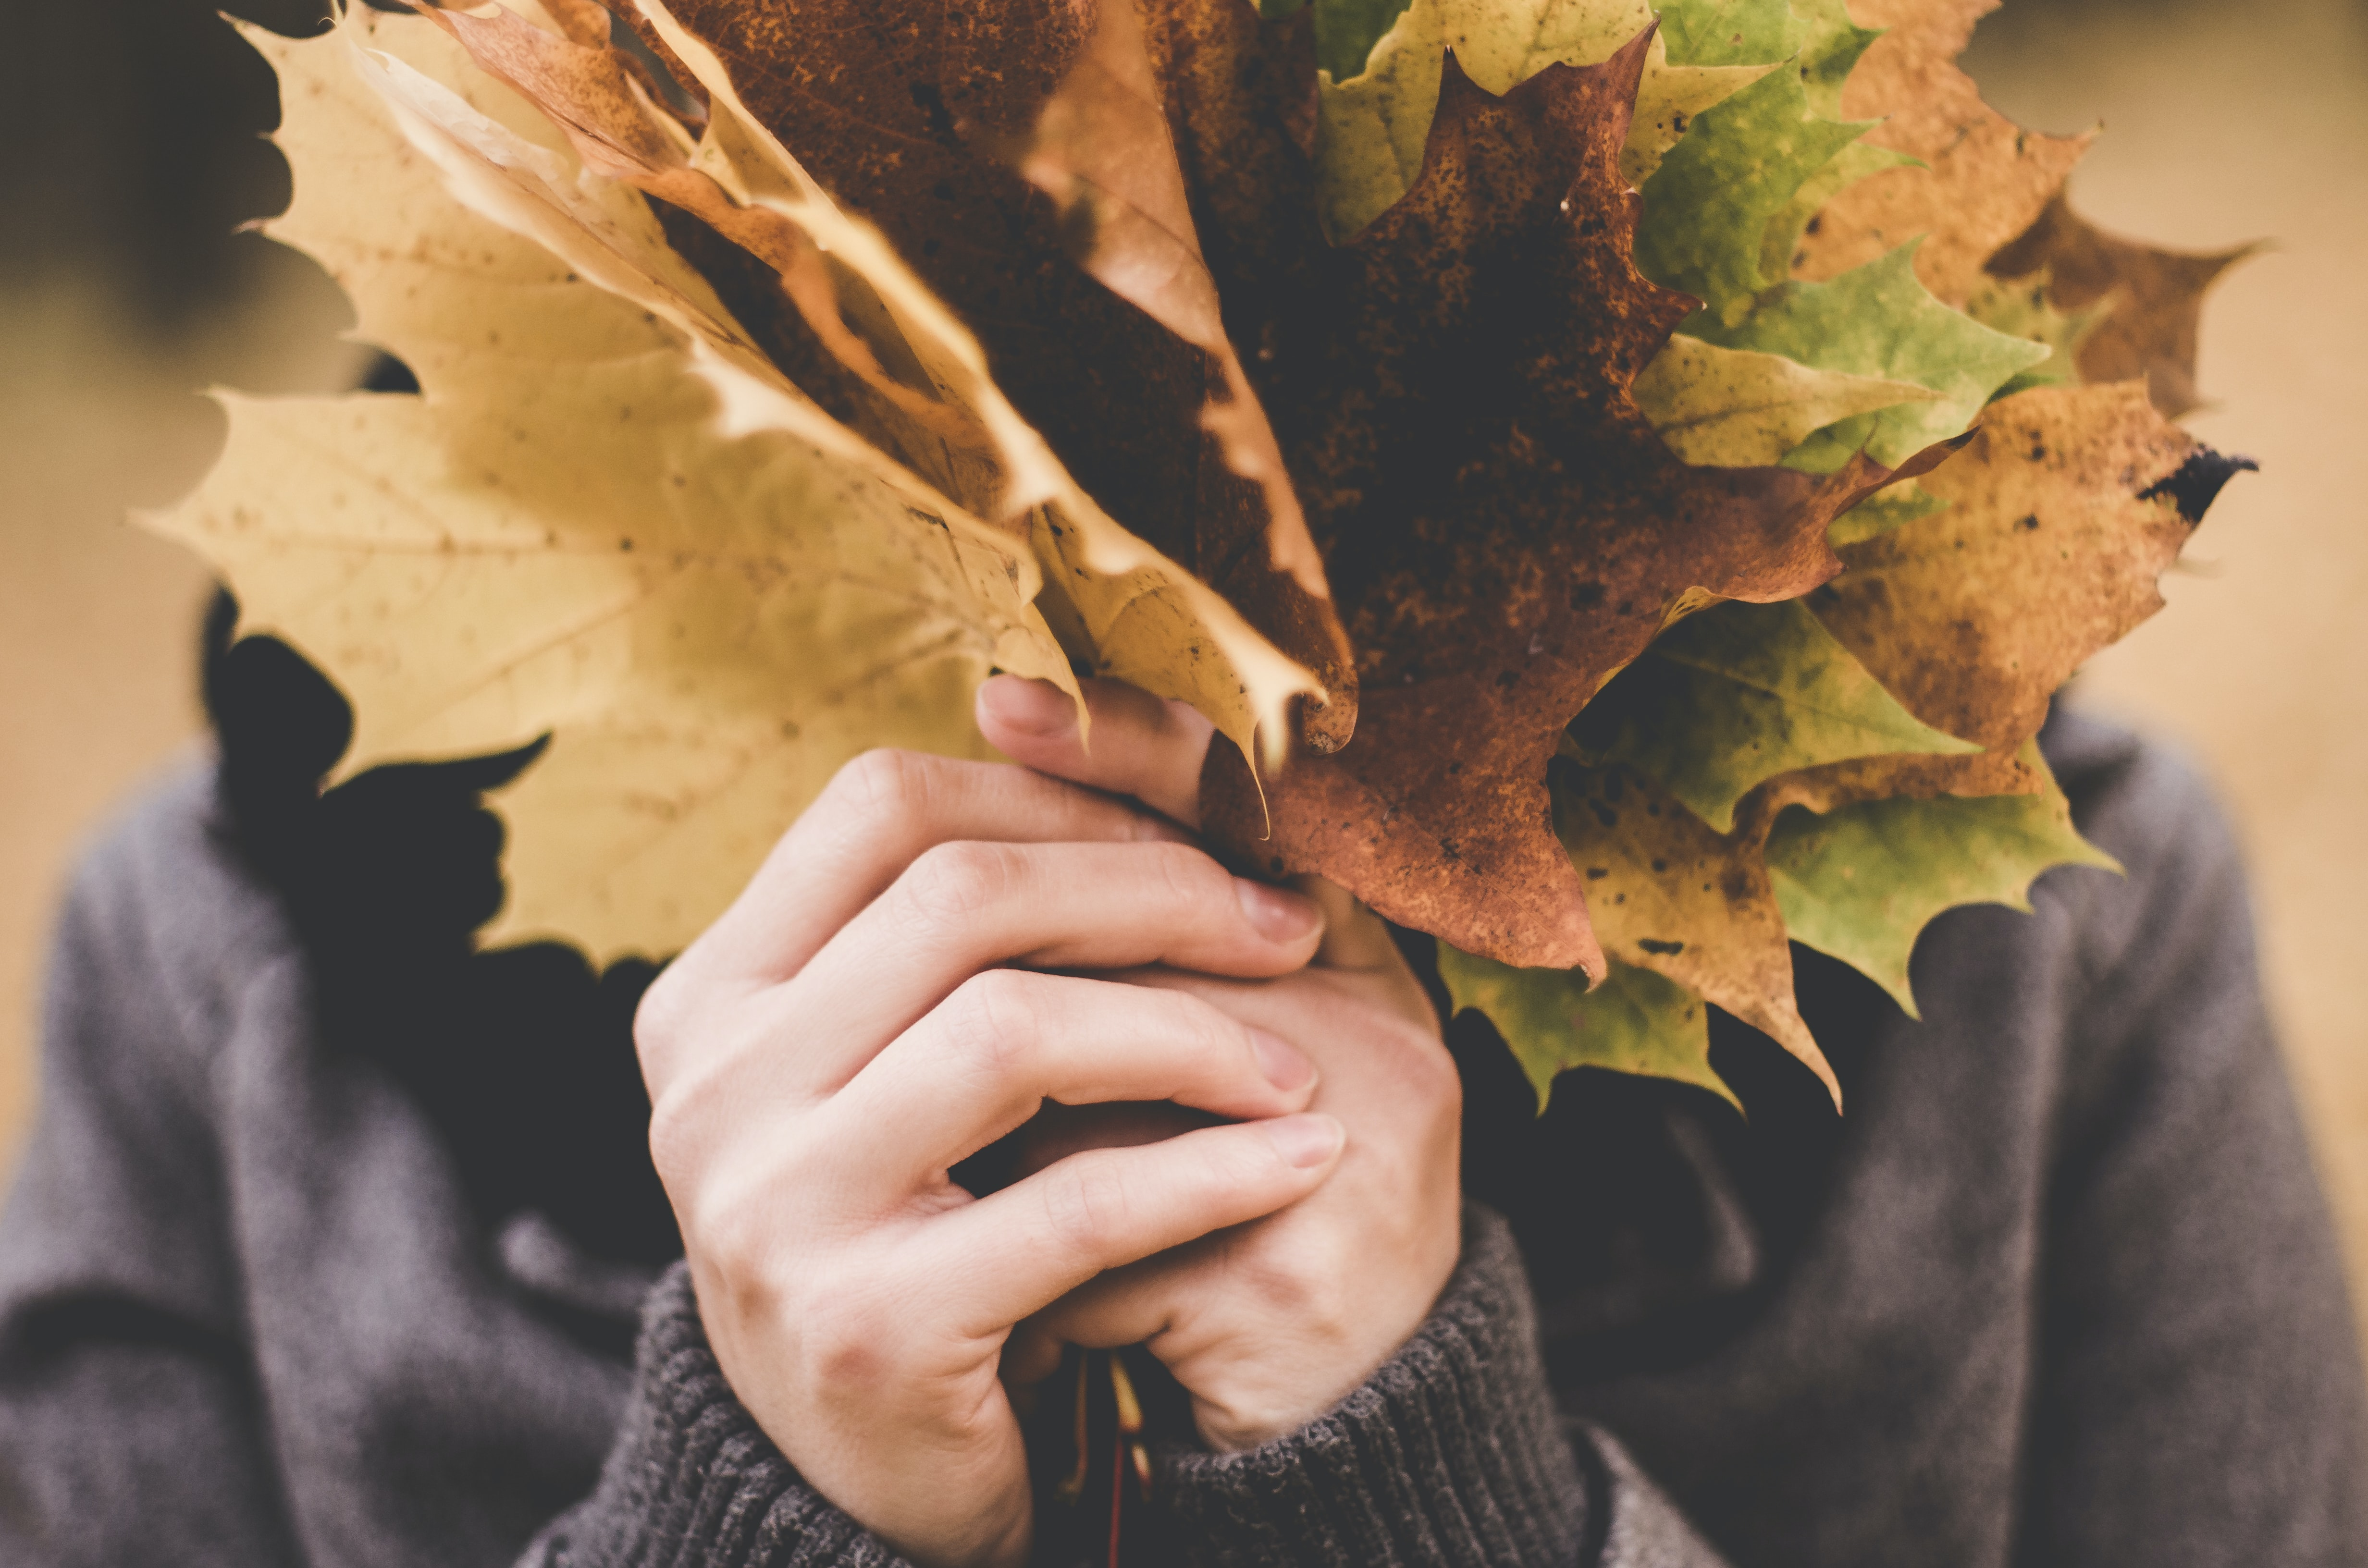 A person hiding their face behind a bouquet of autumn leaves in Wilanów